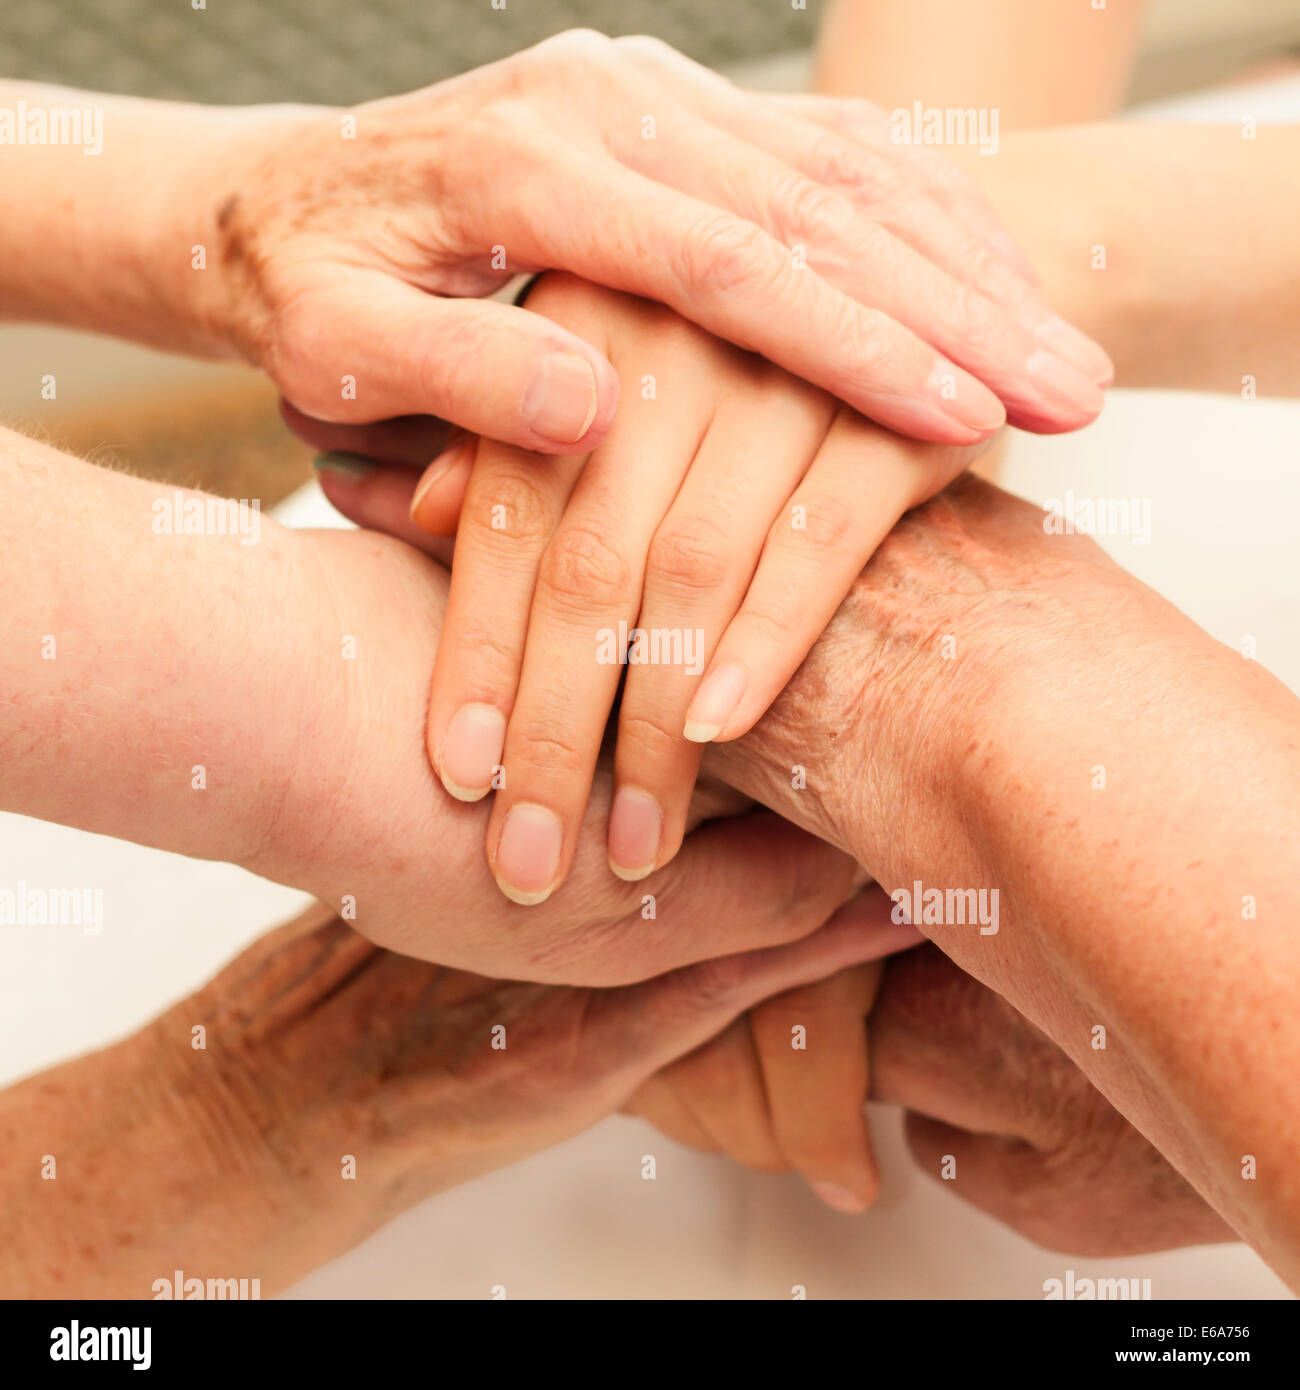 togetherness,connection - Stock Image